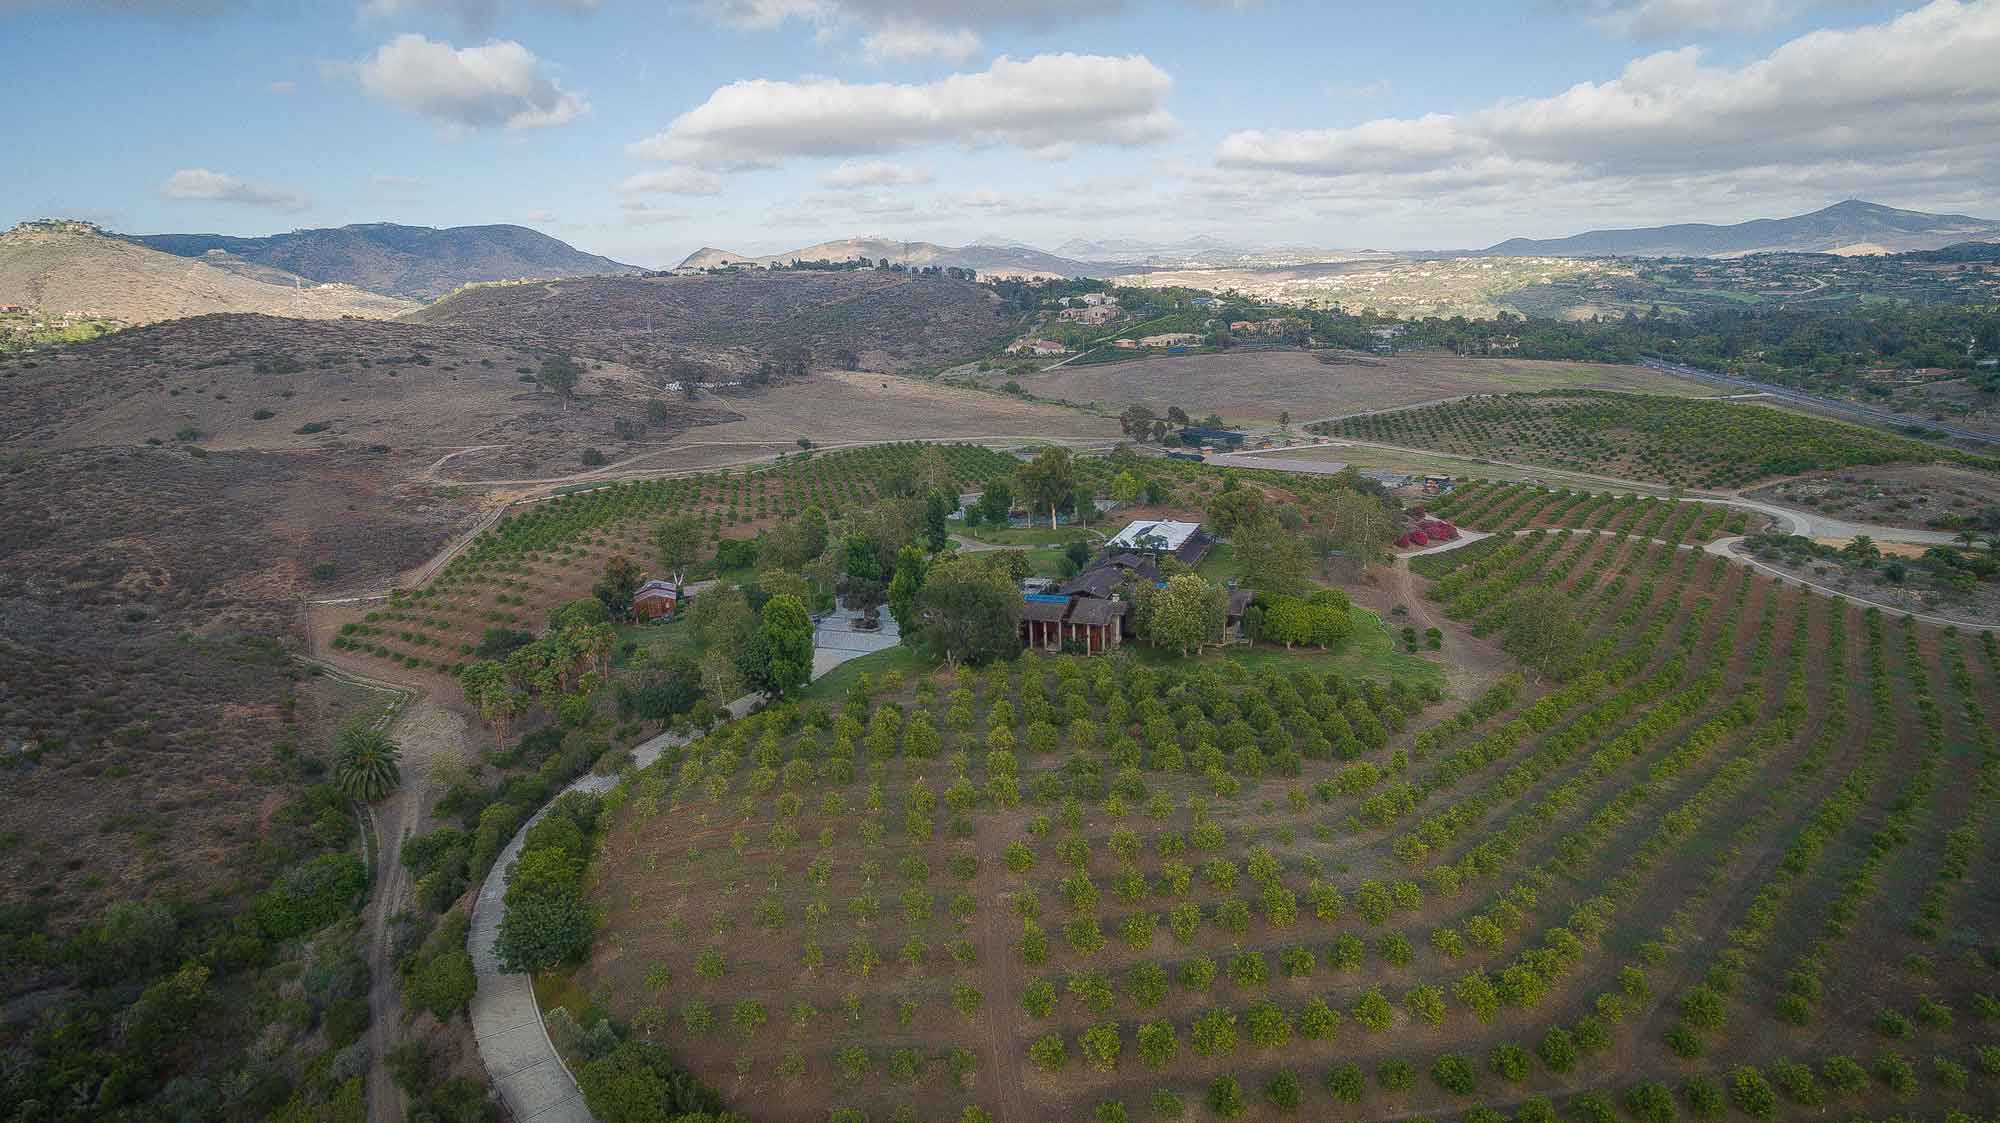 Del Dios embraces 40 acres of producing Valencia orange groves and includes a lake, tennis court, and equestrian facilities.